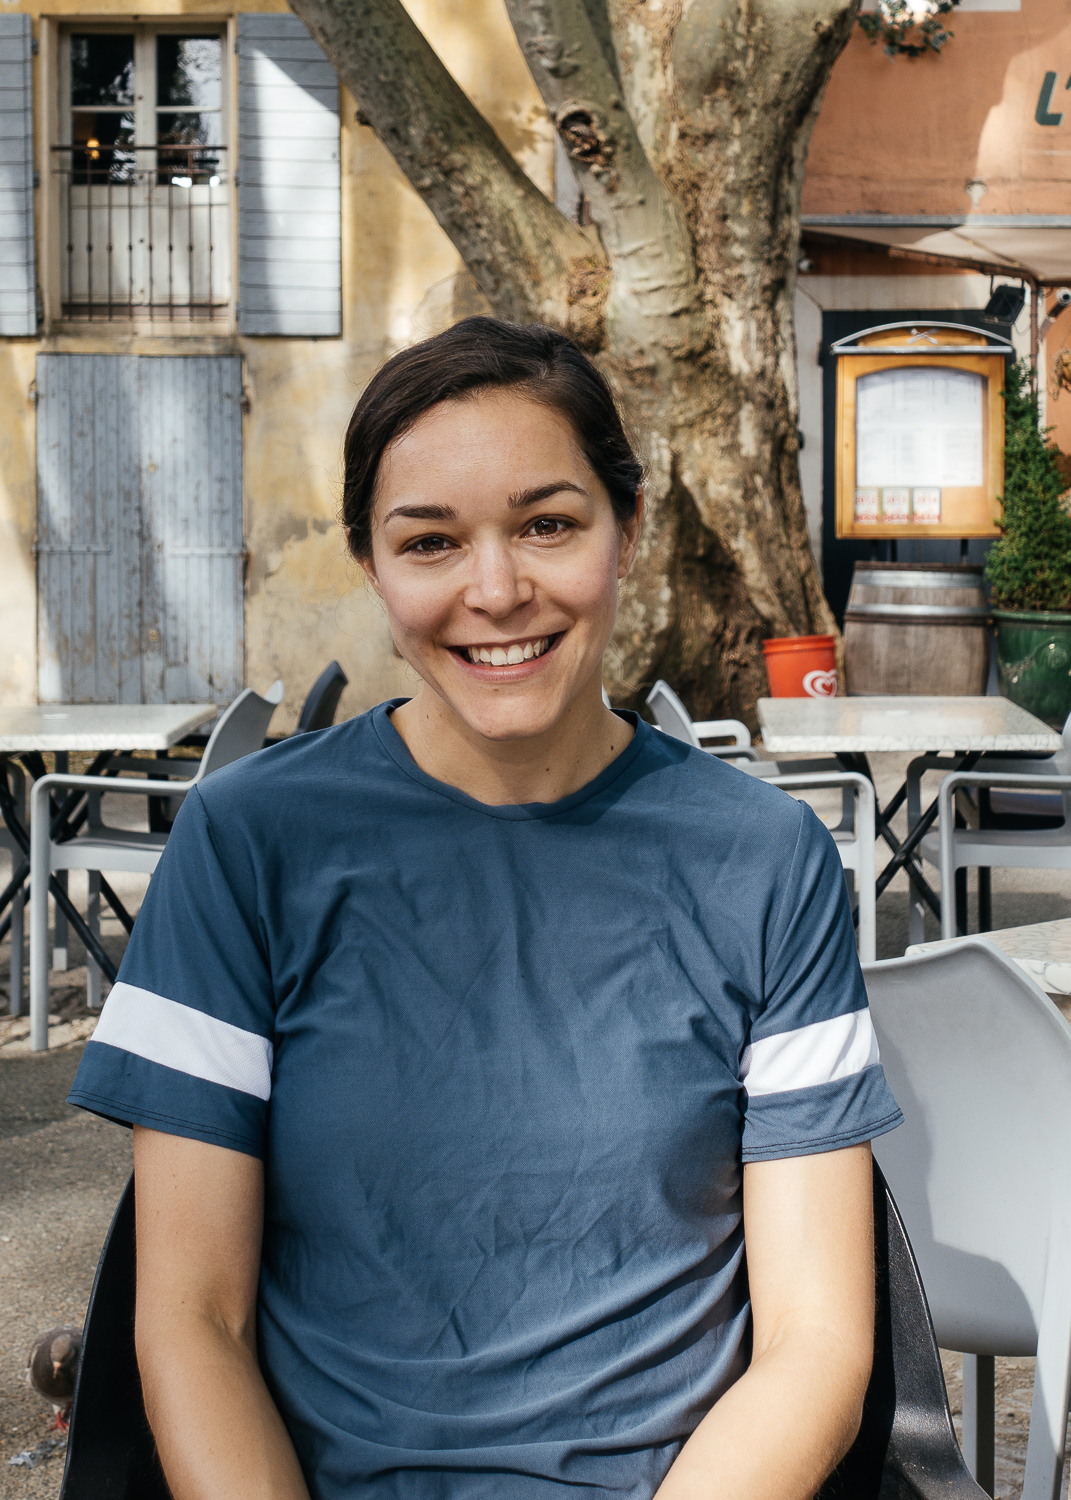 Chelsea at a cafe in Cucuron.